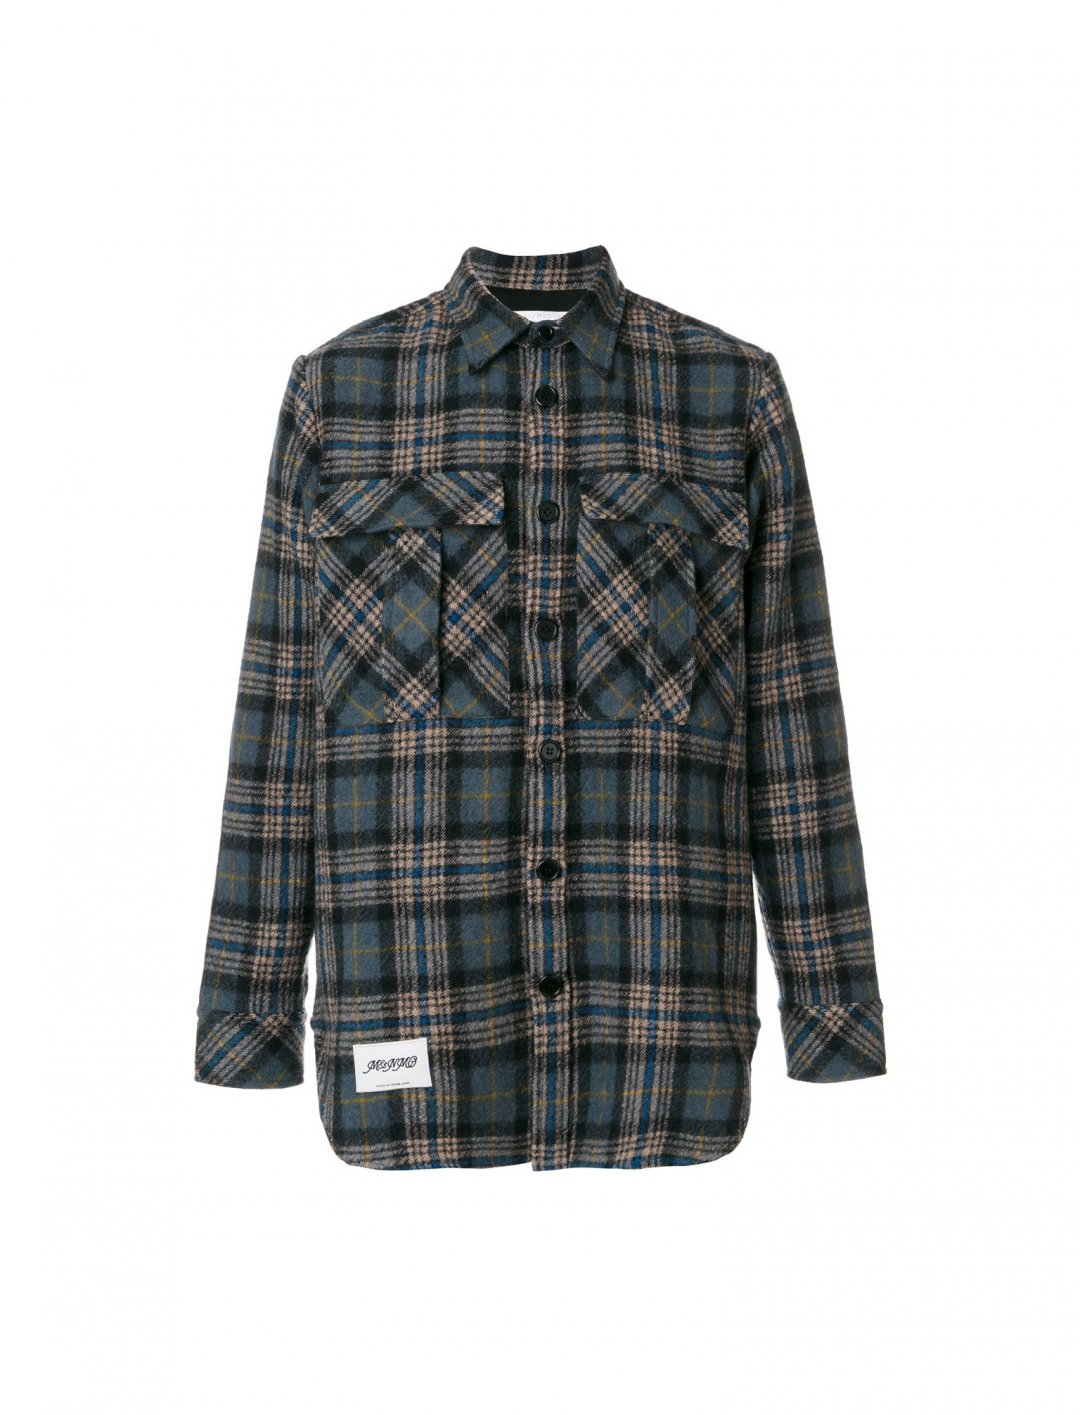 "Justin Timberlake's Flannel Shirt {""id"":5,""product_section_id"":1,""name"":""Clothing"",""order"":5} Stella McCartney"